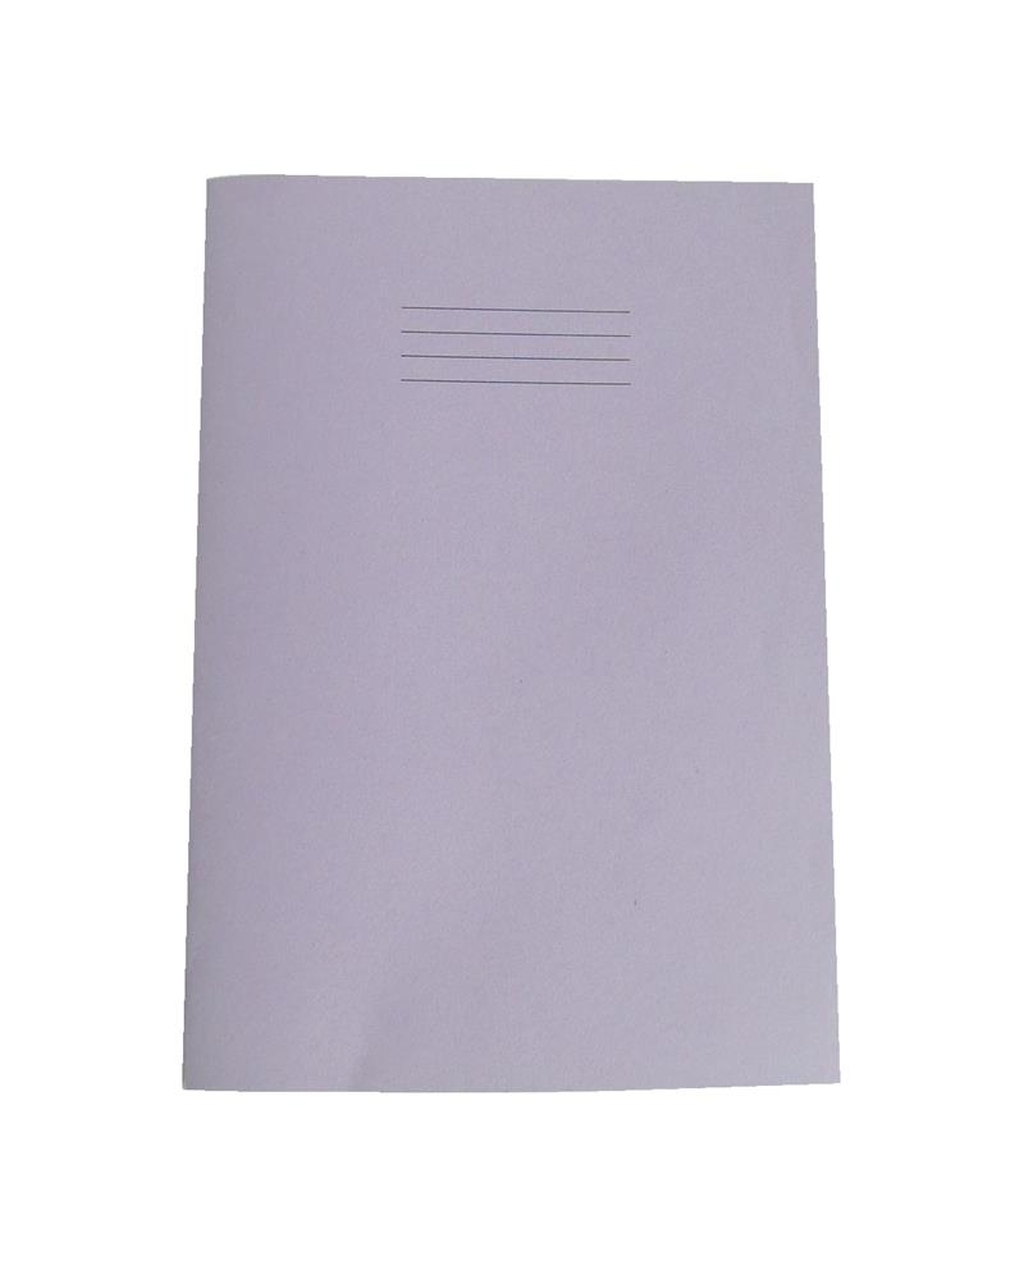 Exercise Book A4+ (330 x 250mm) Purple Cover 12mm Ruled 80 Pages